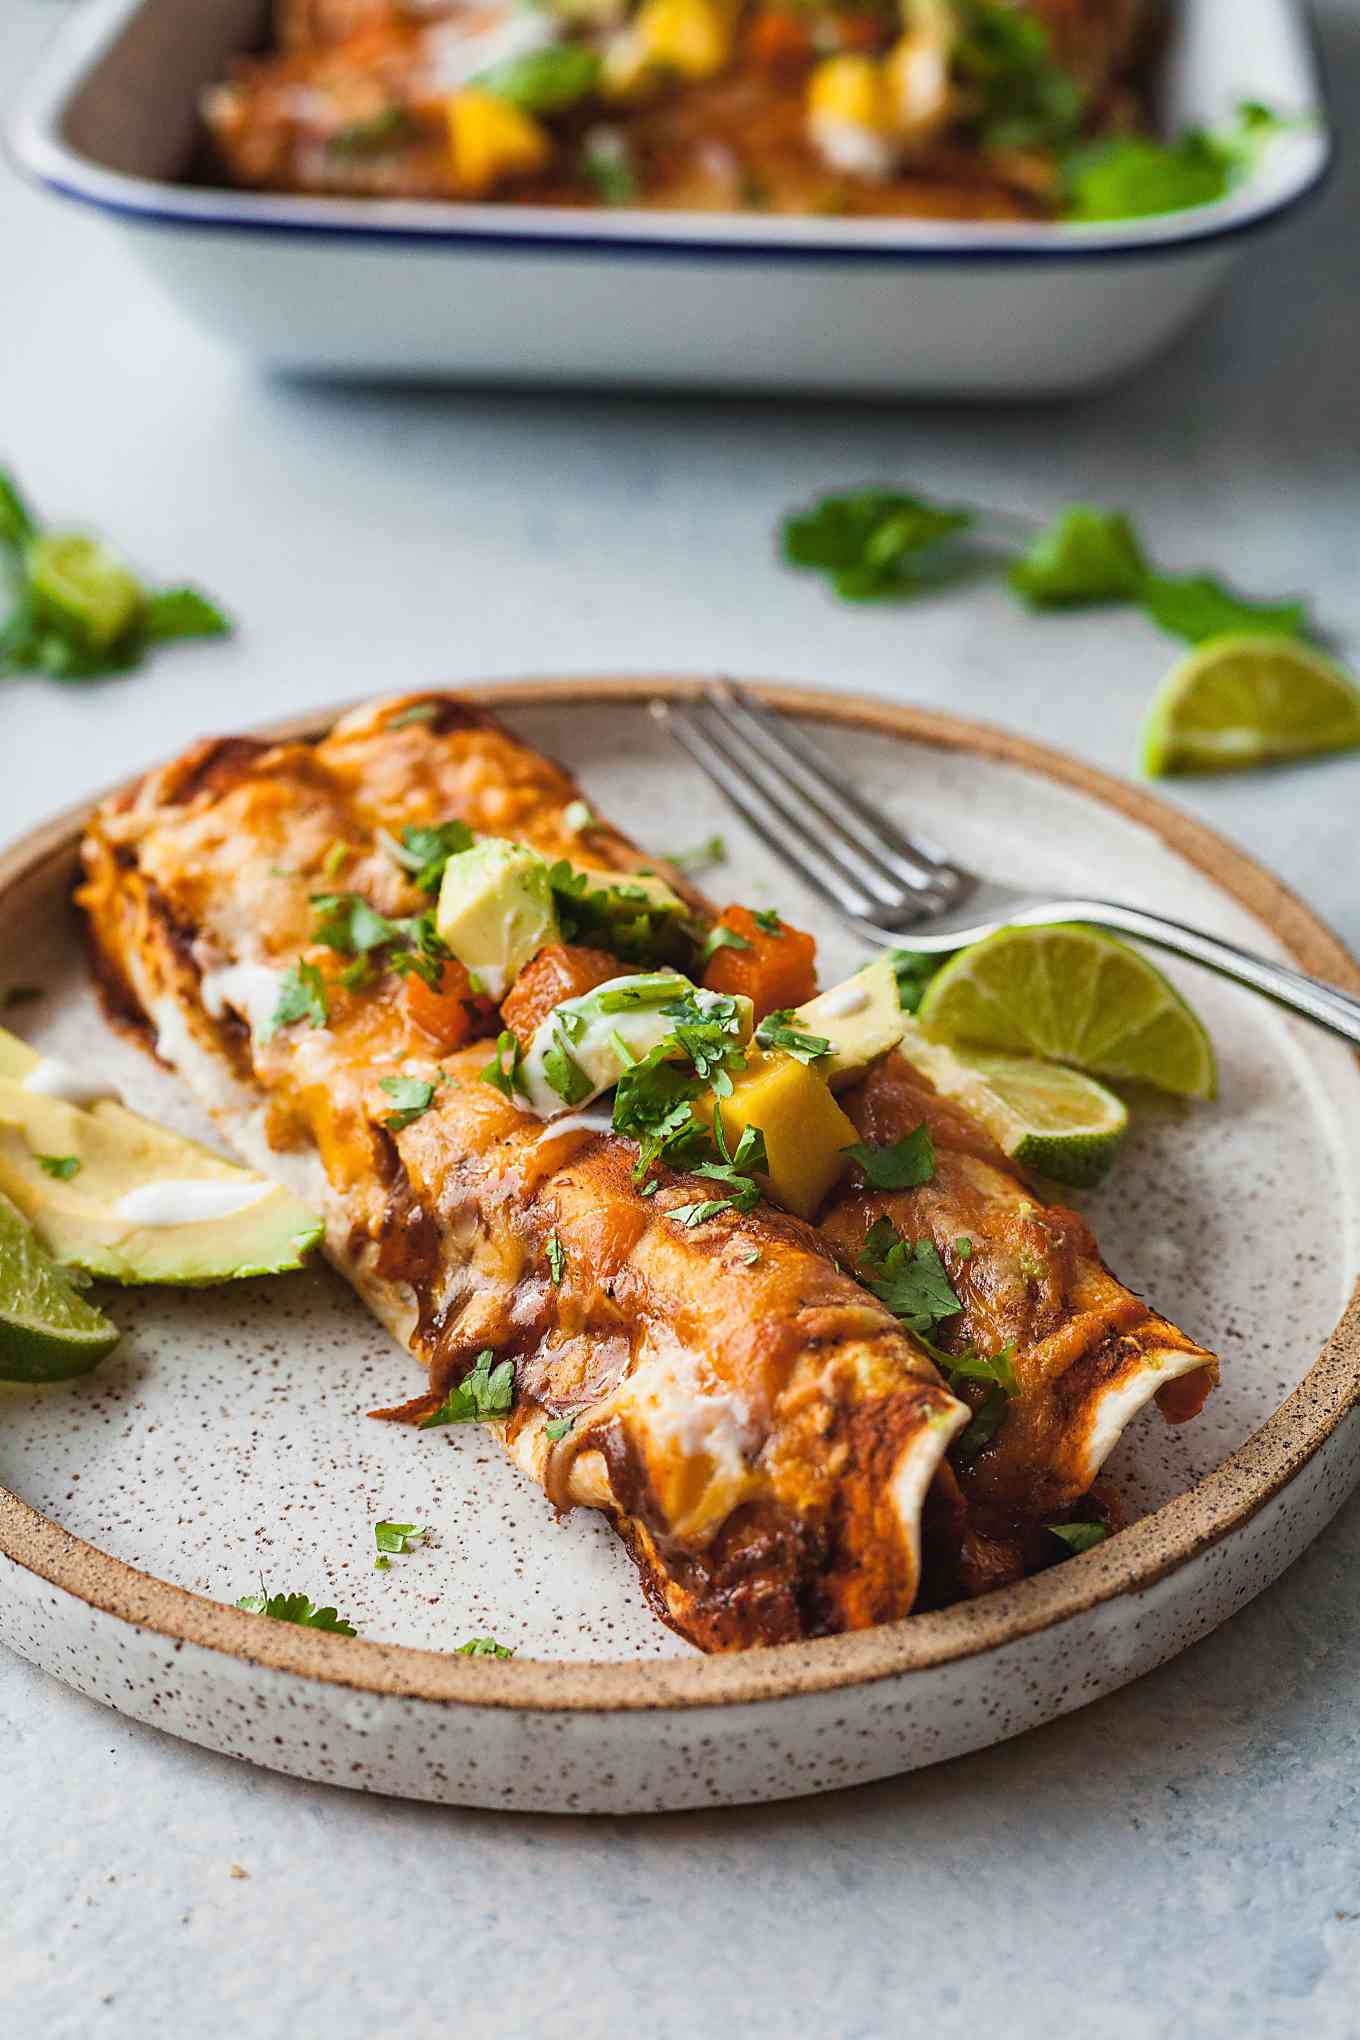 two black bean and butternut squash enchiladas on a rustic plate with avocado, limes, and a fork